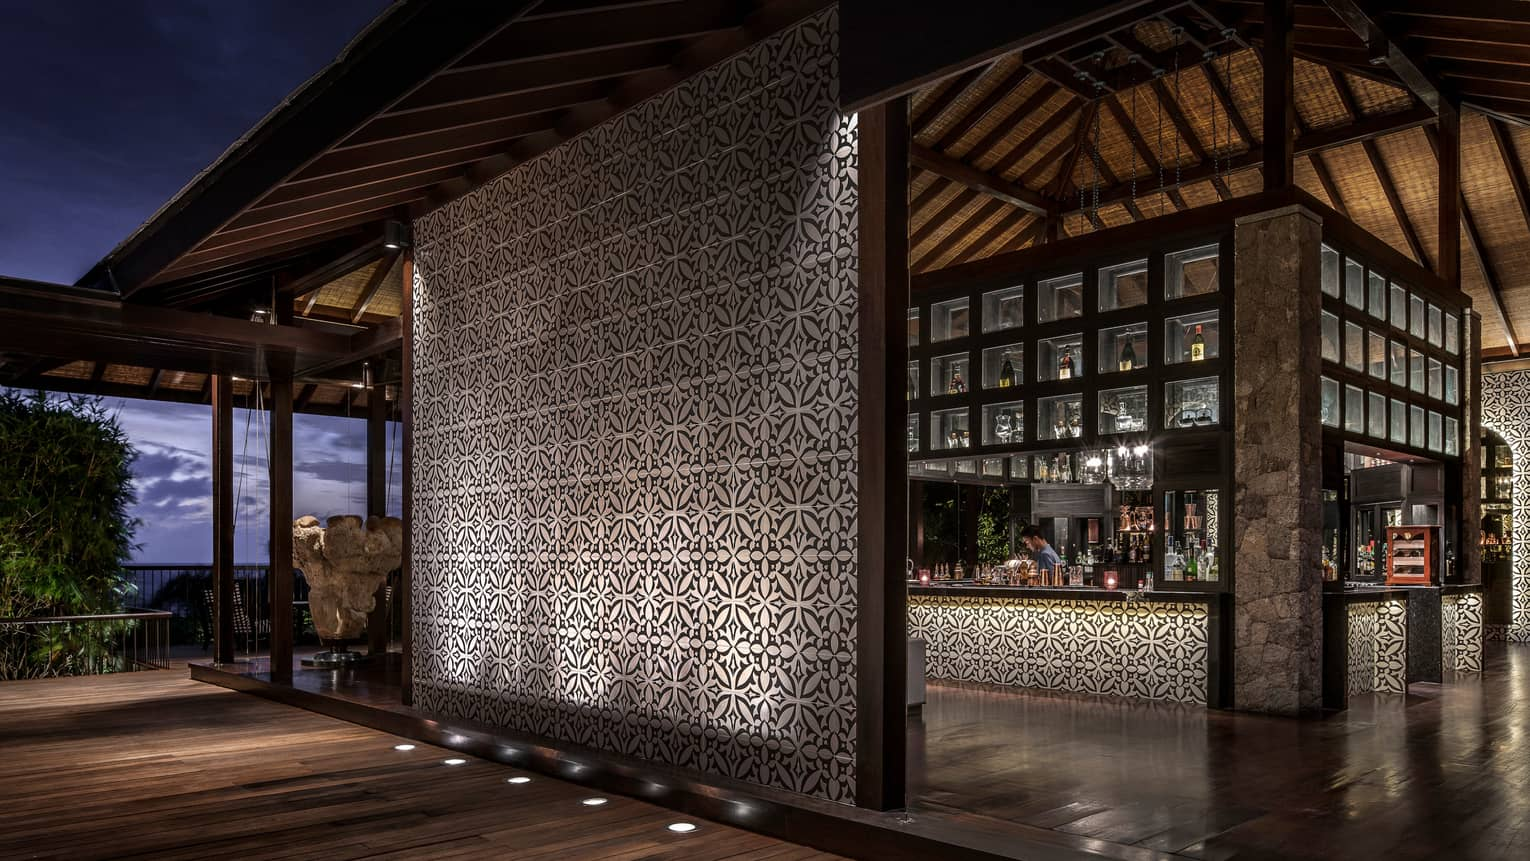 Bar interior, showing mosaic wall and mosaic lined bar with bartender and evening views out window